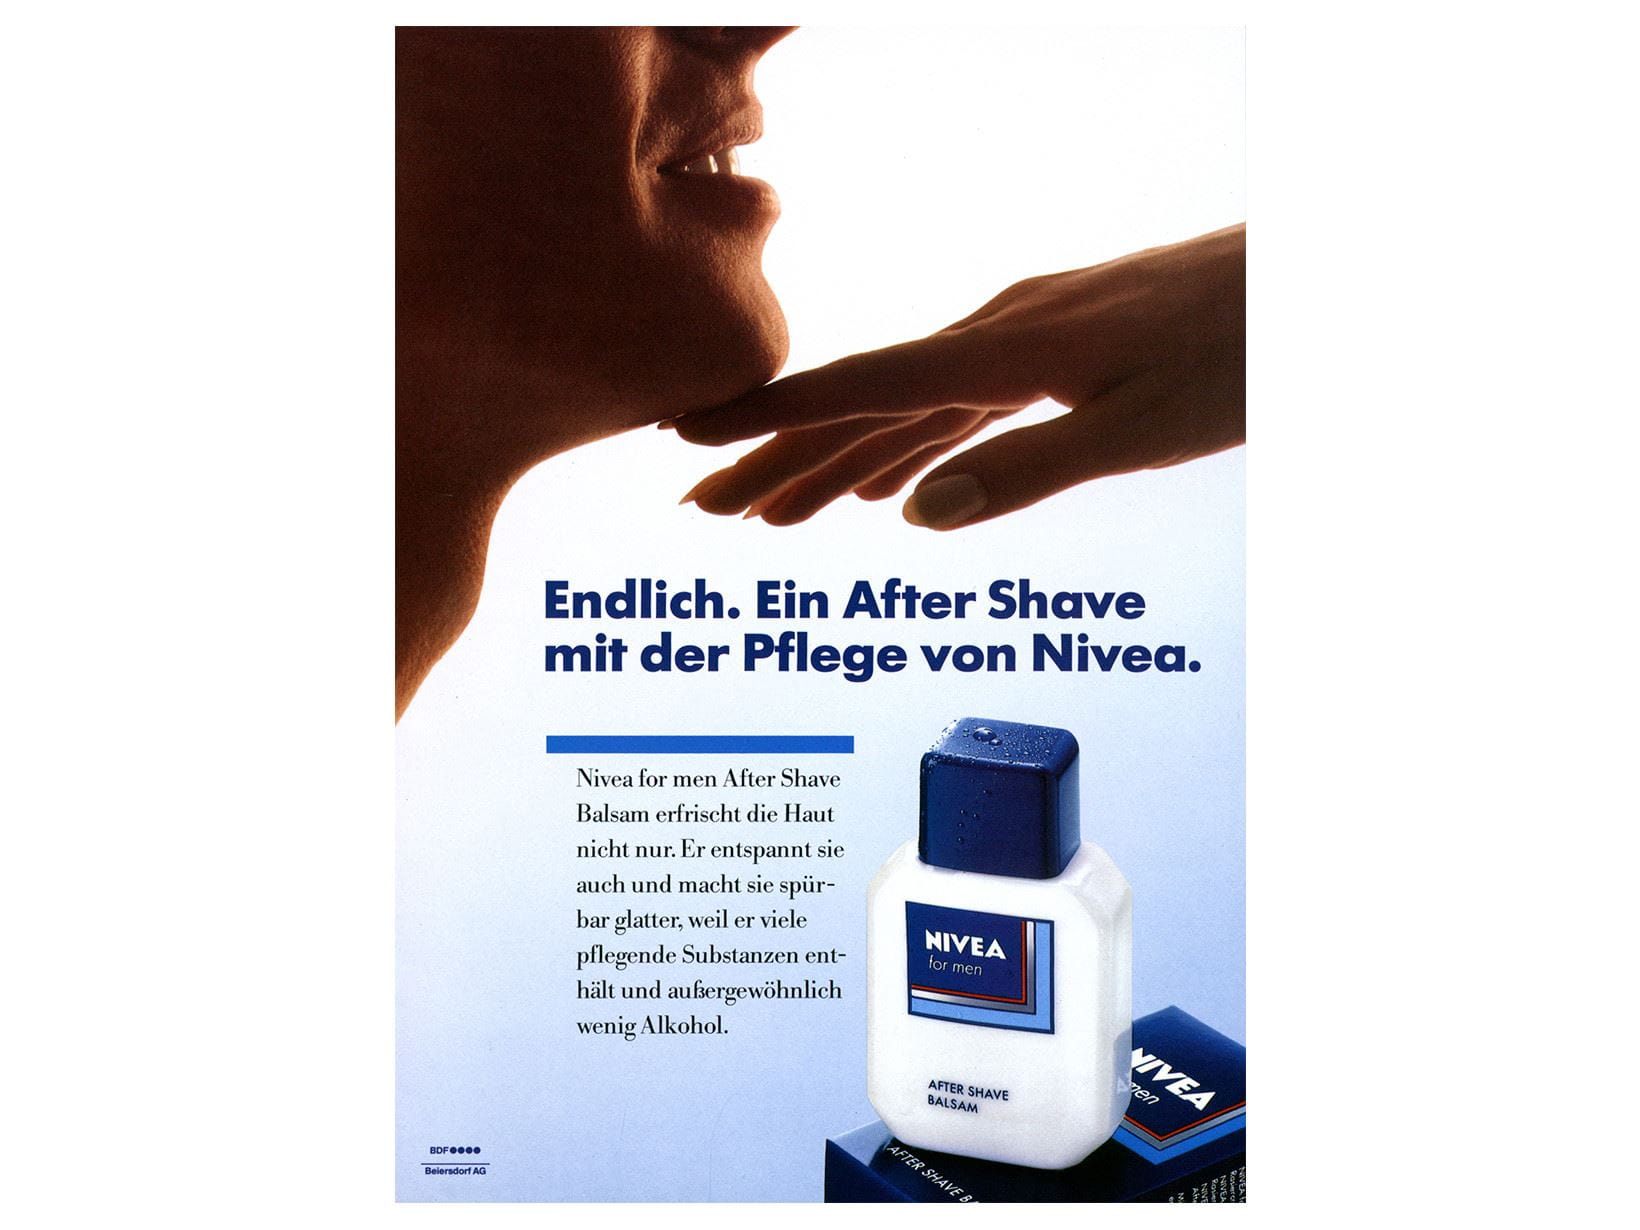 NIVEA for Men After Shave 1986